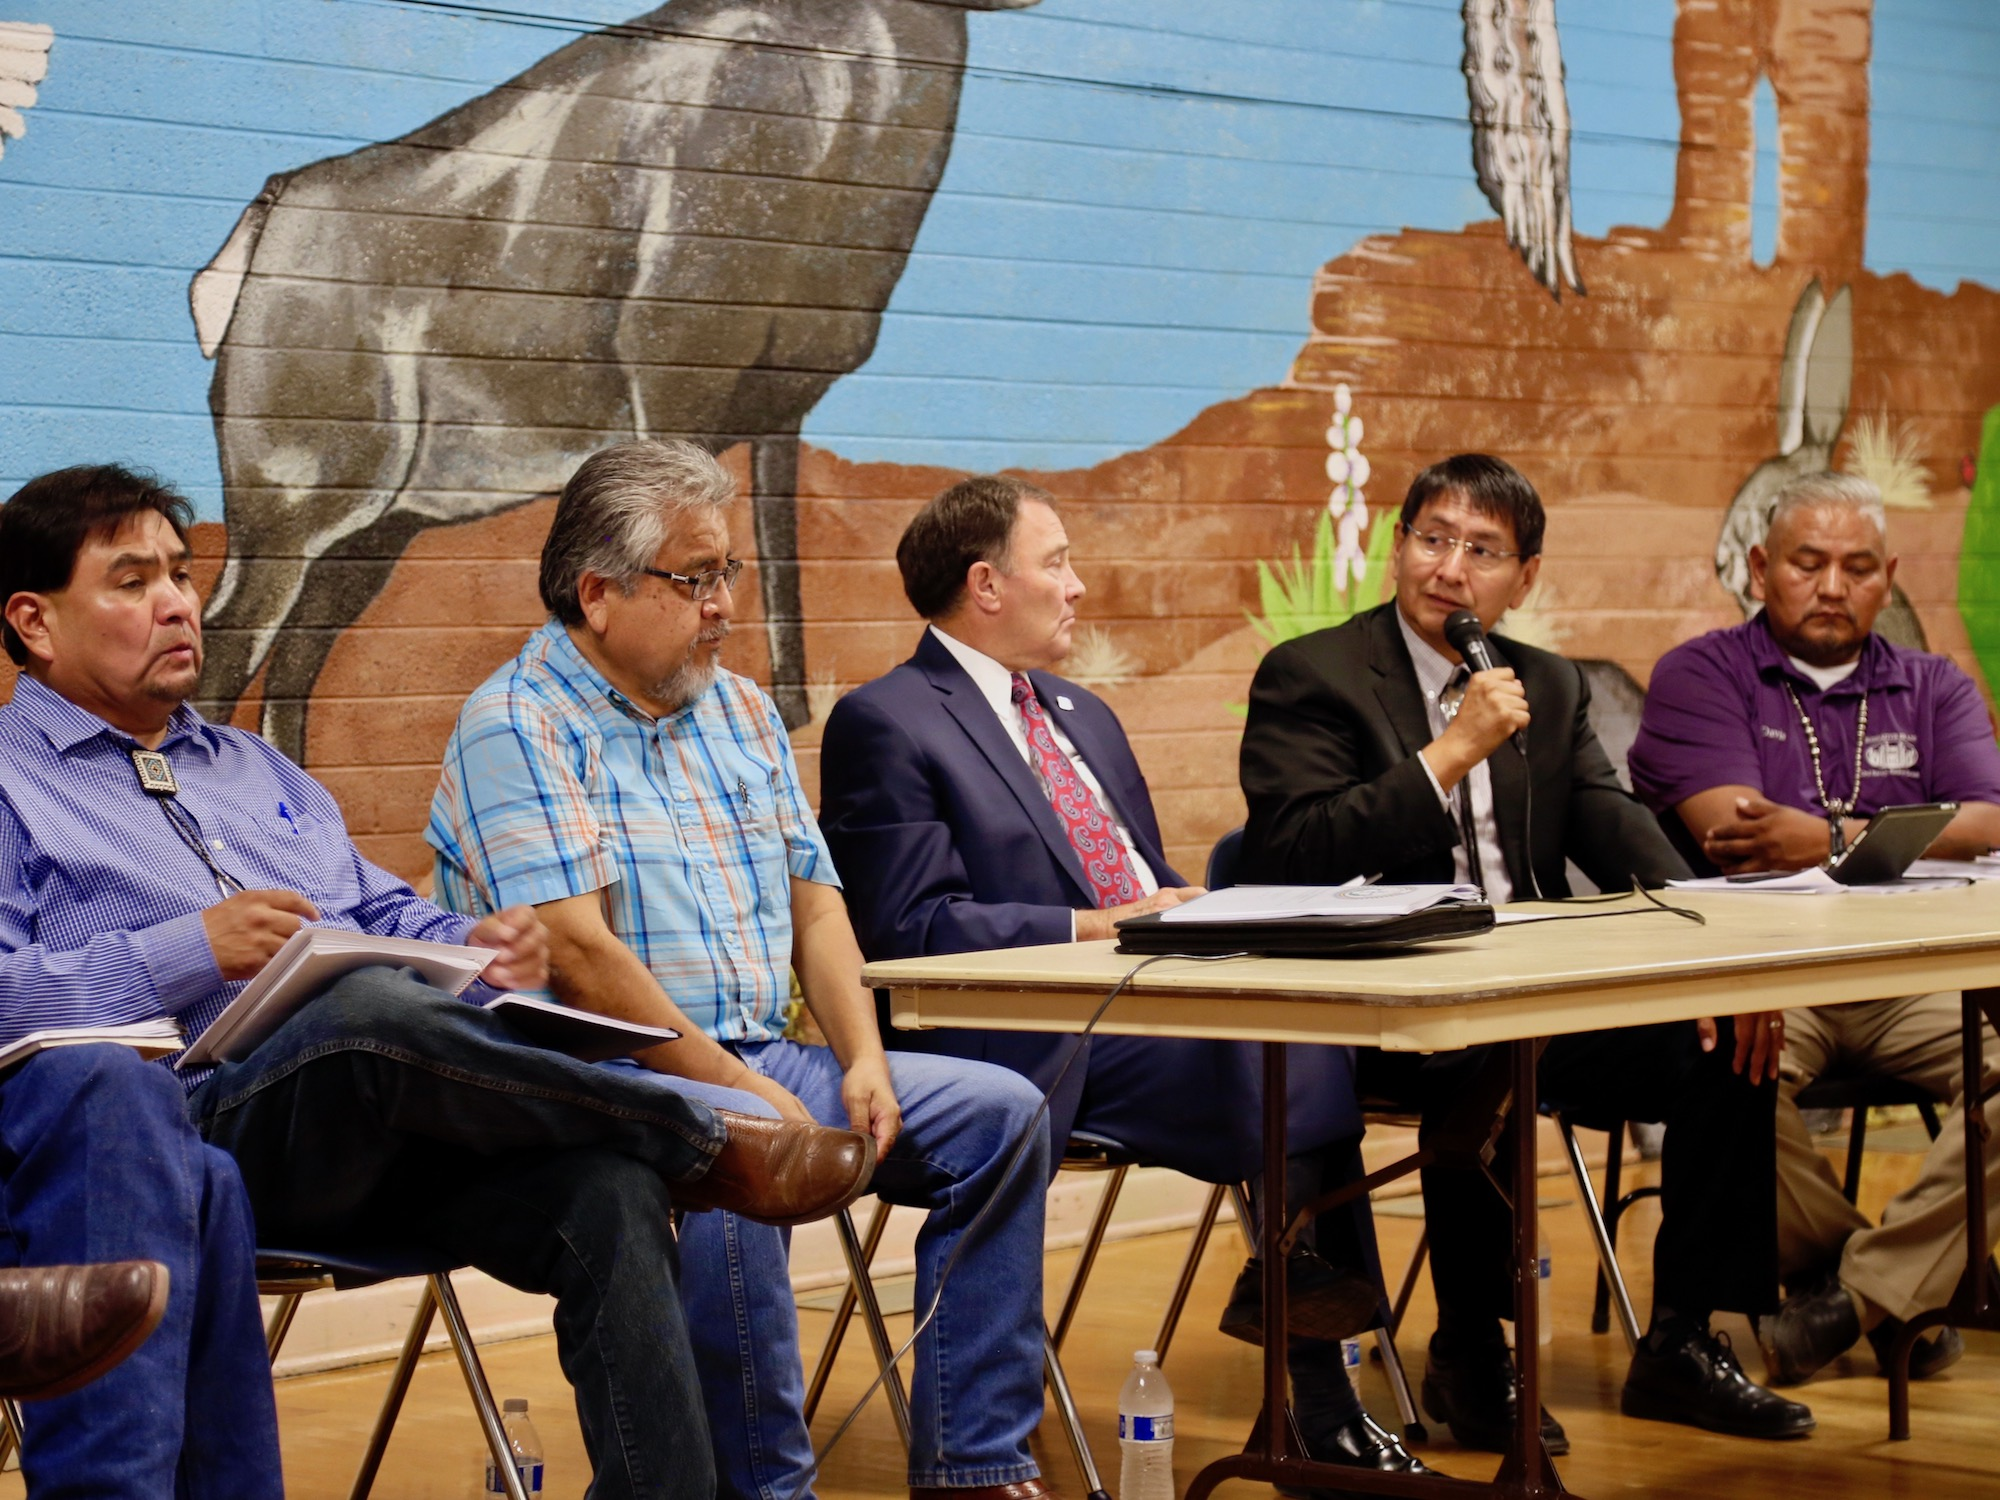 Senate Committee on Indian Affairs adds tribal water rights hearing to schedule